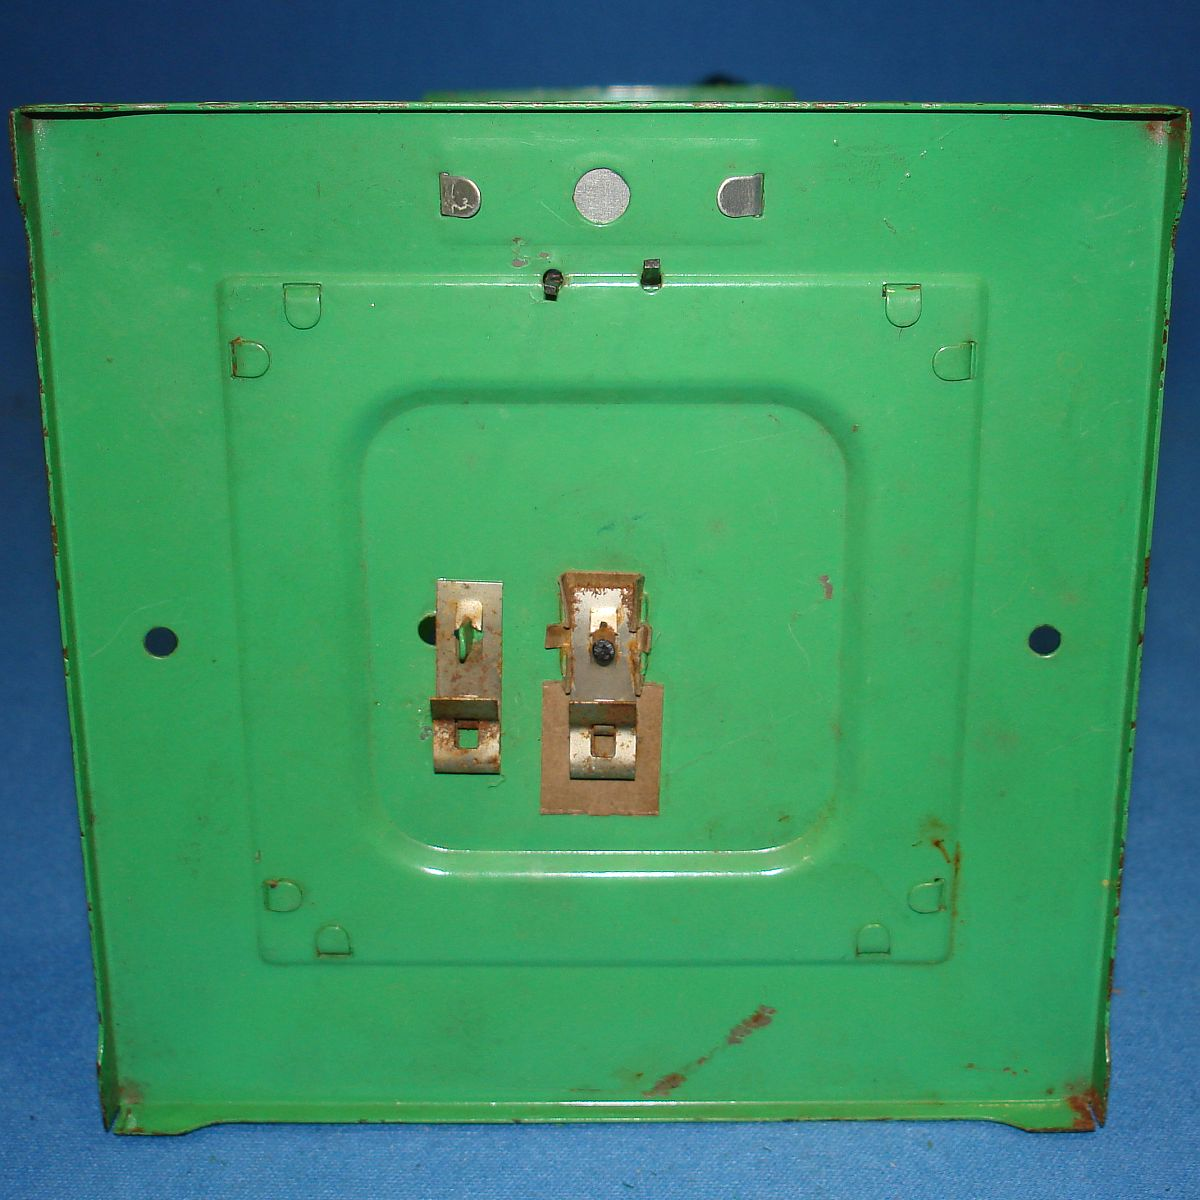 Vintage Lionel Corporation Green Train Floodlight Tower #395 Base